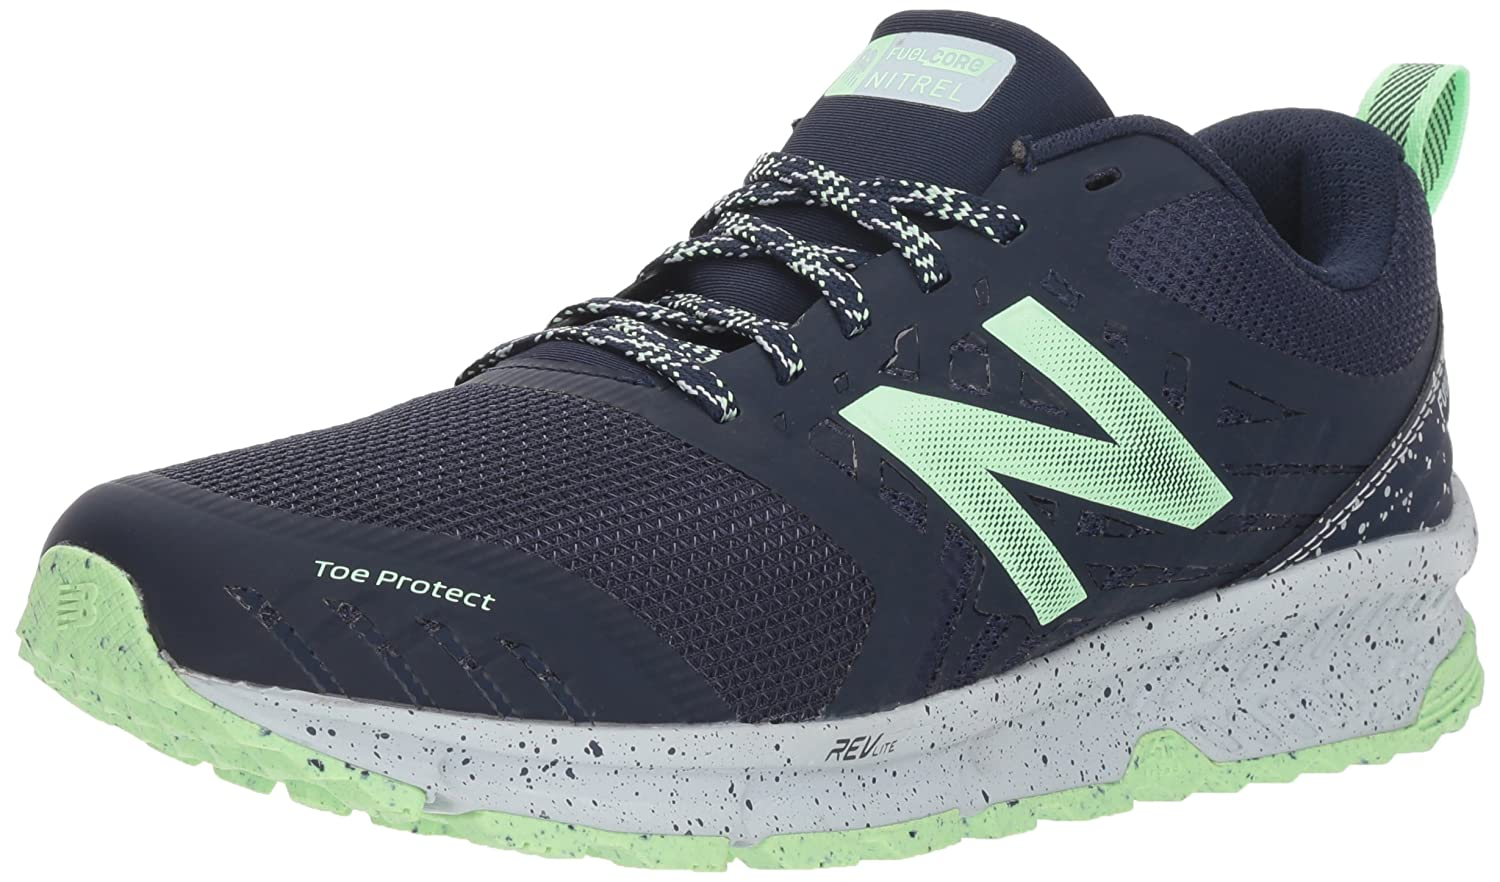 New Balance Women's Nitrel v1 FuelCore Trail Running Shoe B075R7J4P3 6.5 B(M) US|Navy